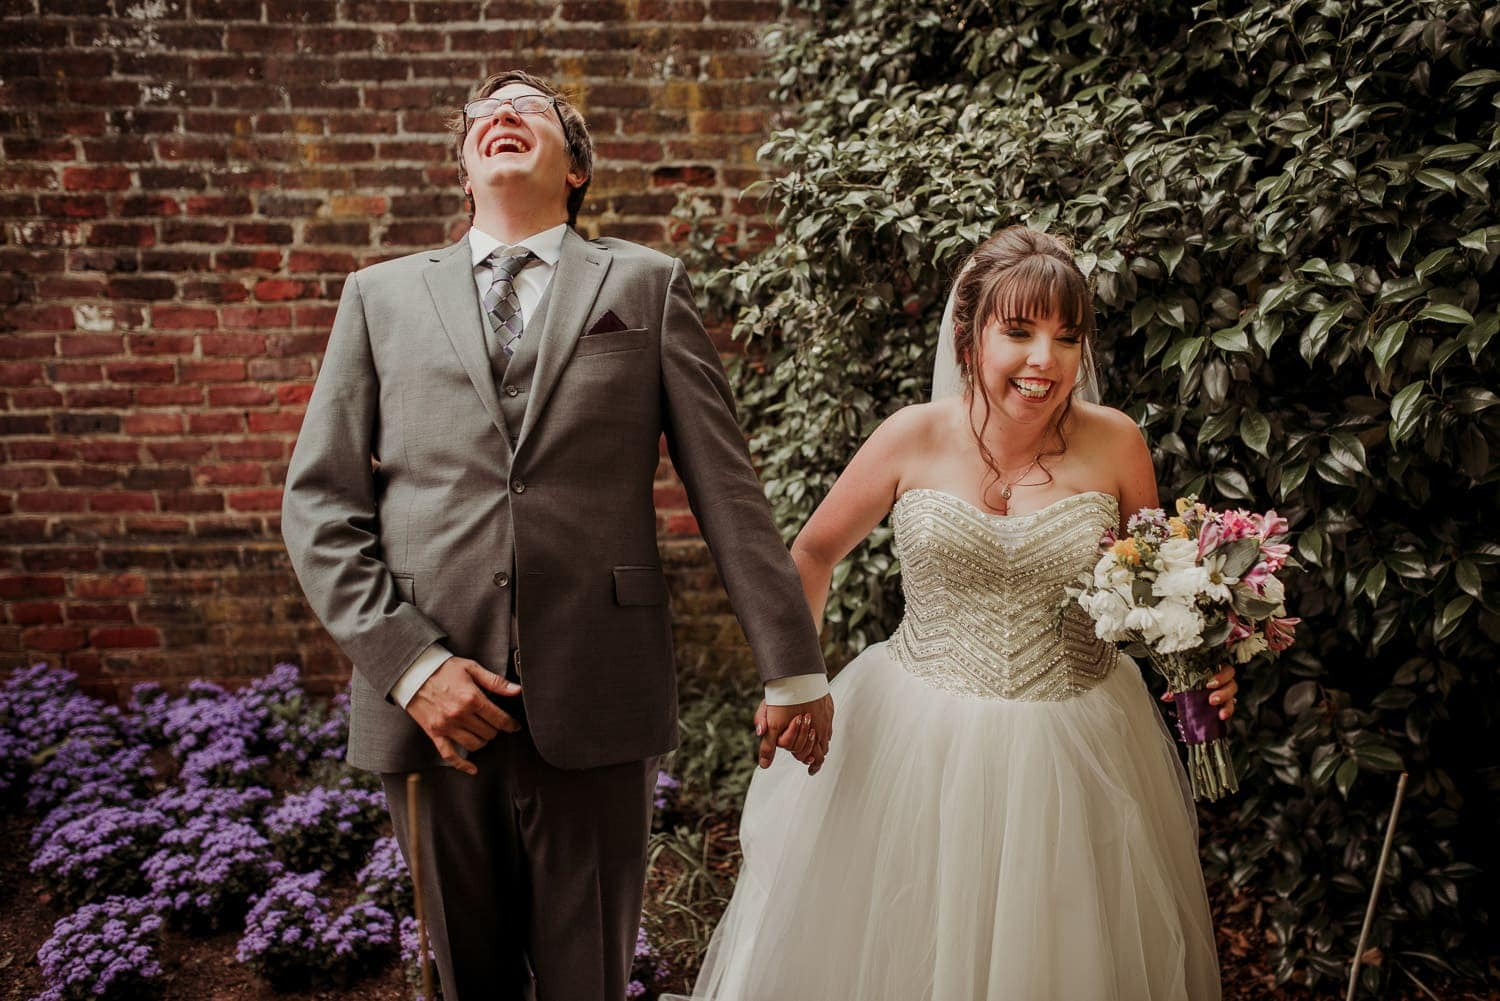 The bride and groom are holding hands and laughing.